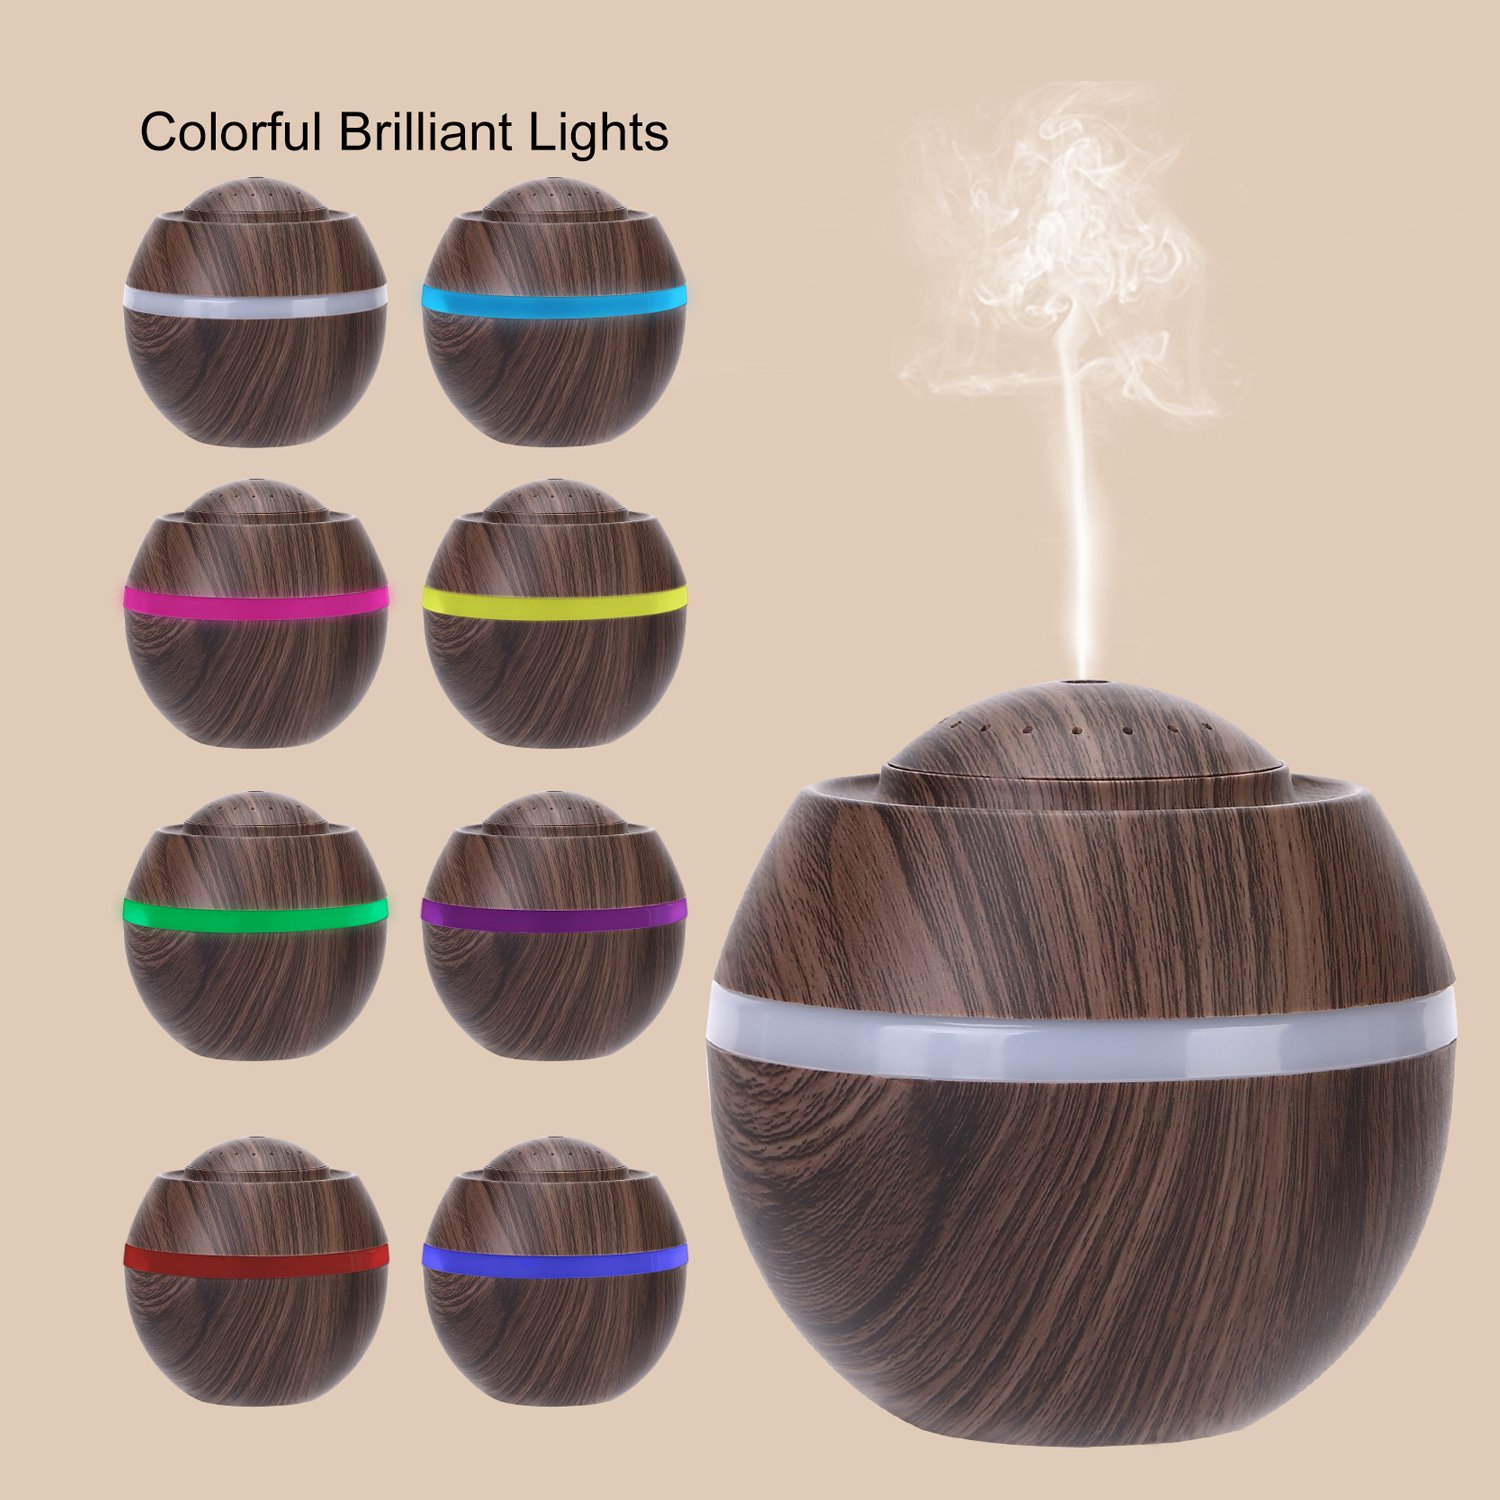 Cool Mist Humidifier Ultrasonic Aroma Essential Oil Diffuser for Office Home Bedroom Living Room Study Yoga Spa - Wood Grain (Brown) by O'abazar (Image #6)